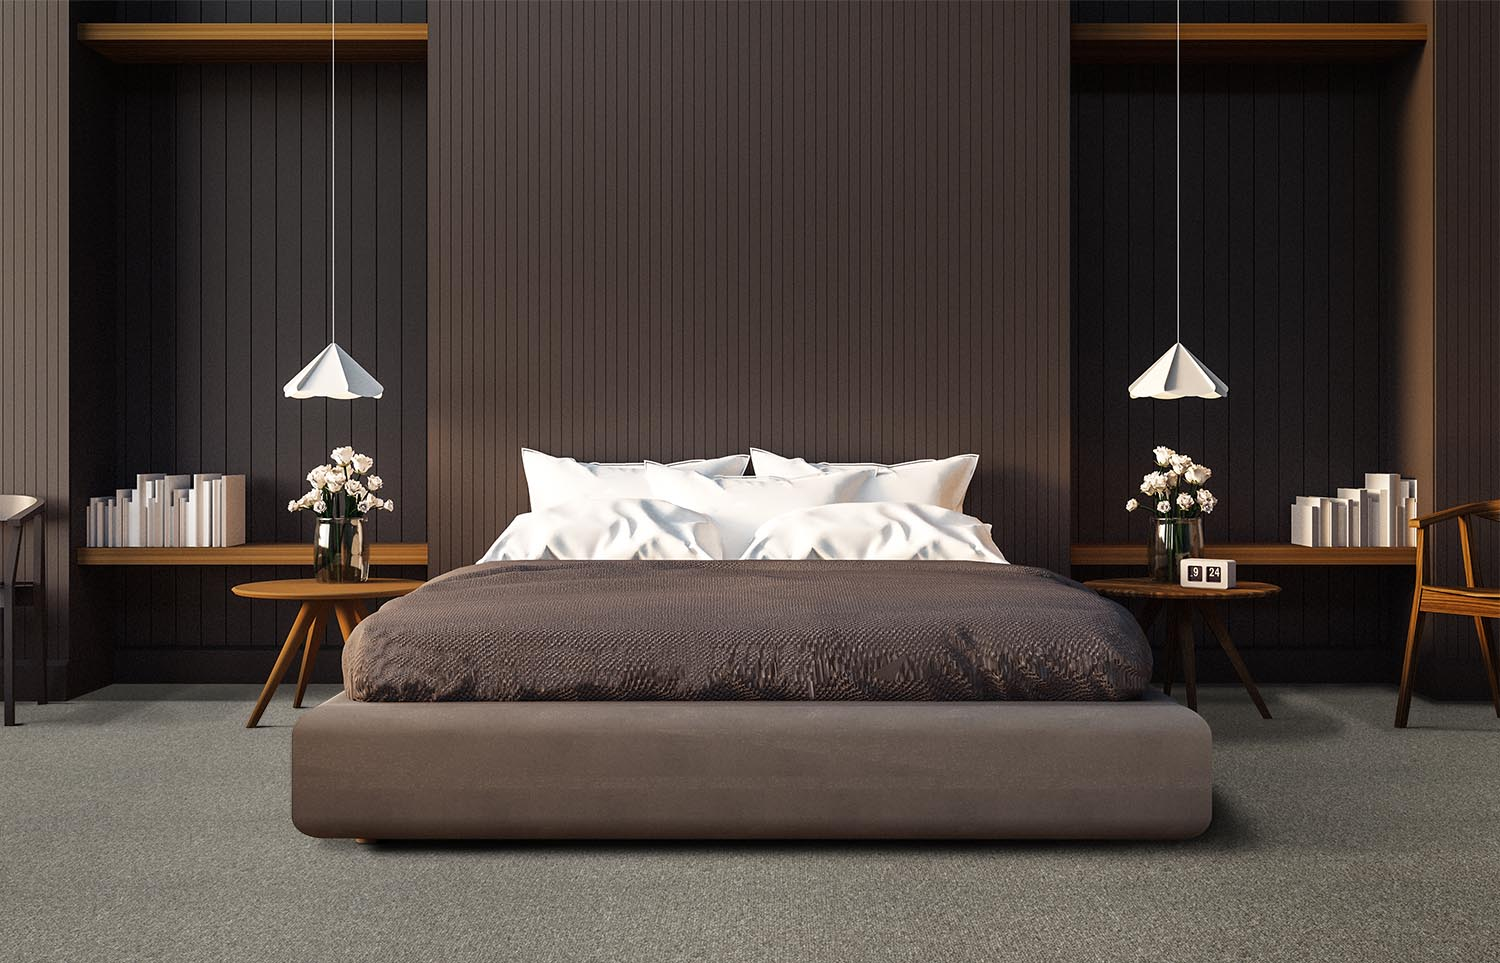 Influence - Gather Round contemporary bedroom